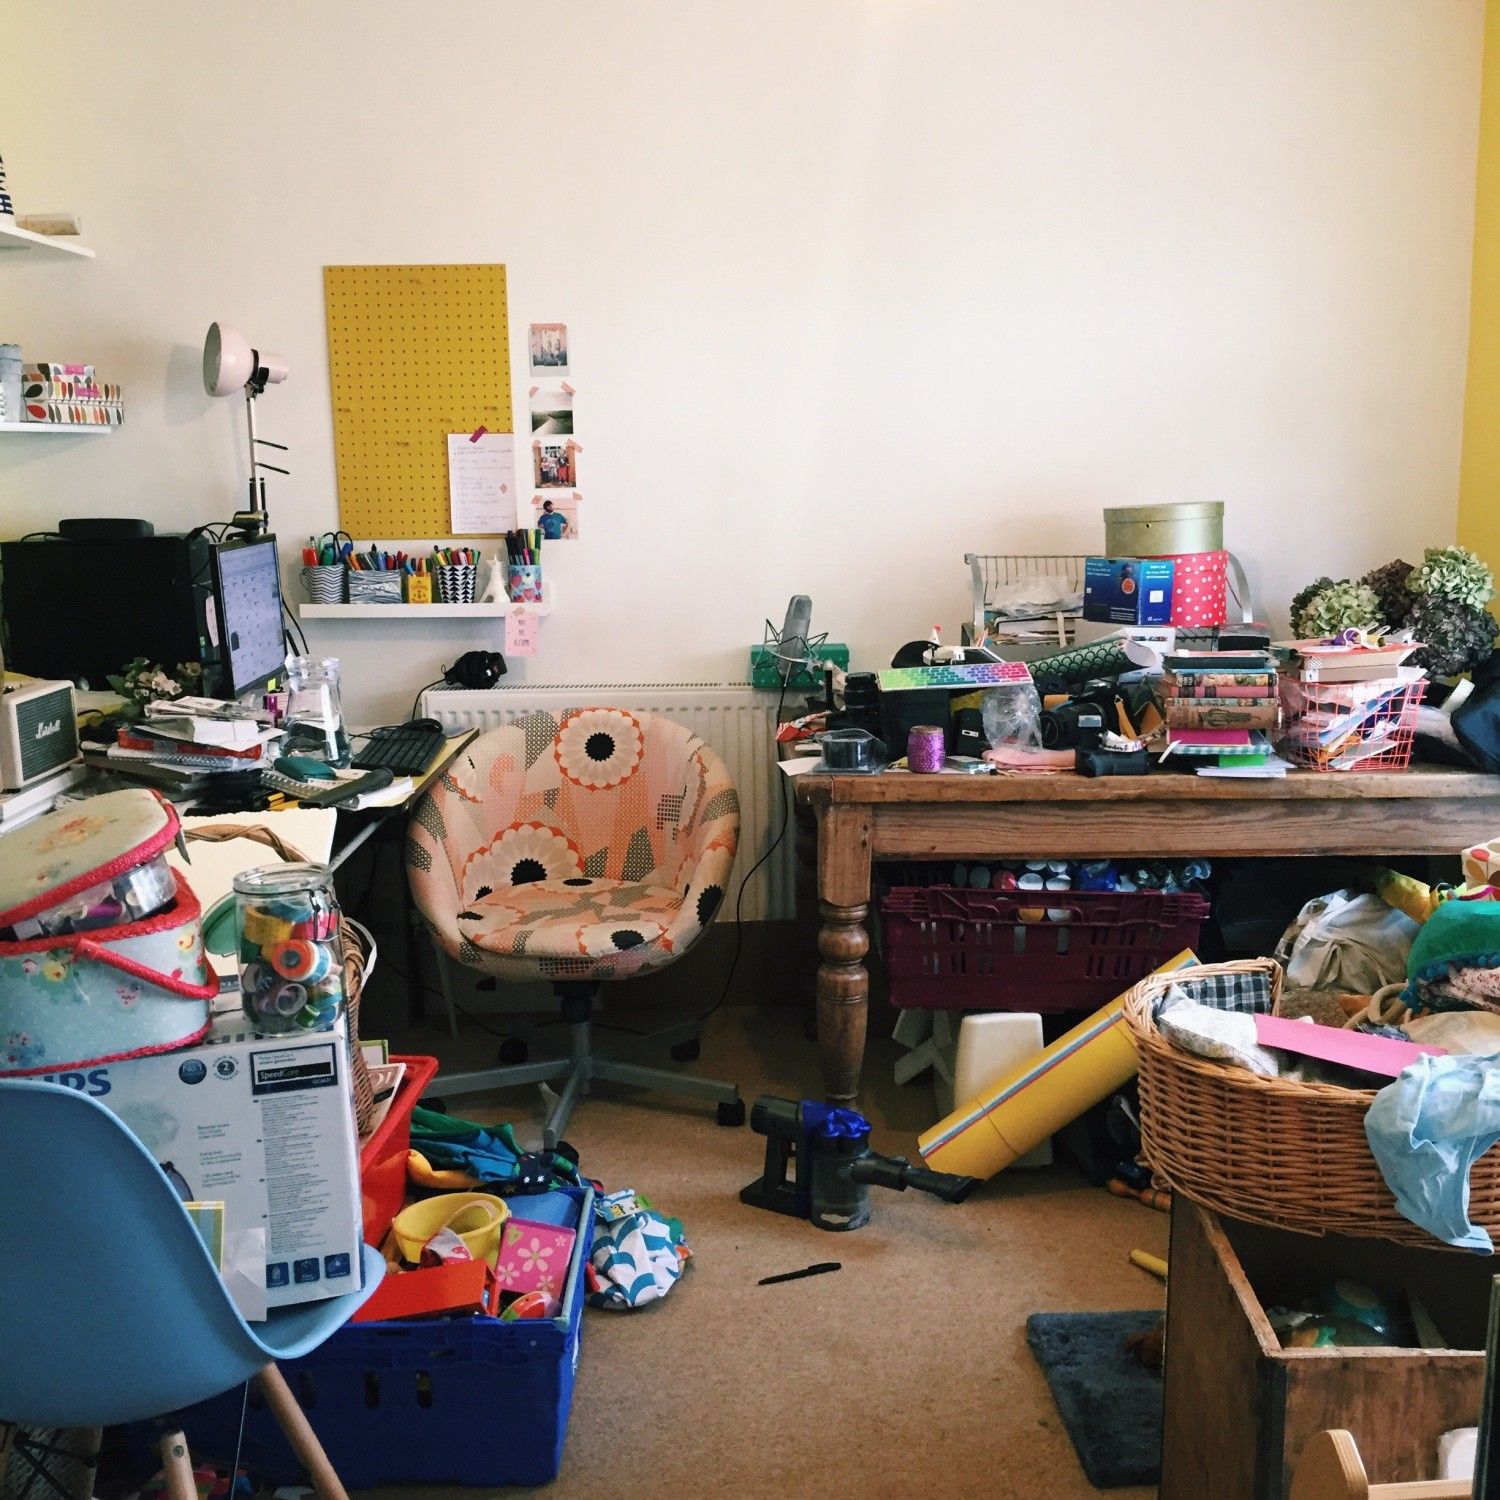 The Messiest Room in The World